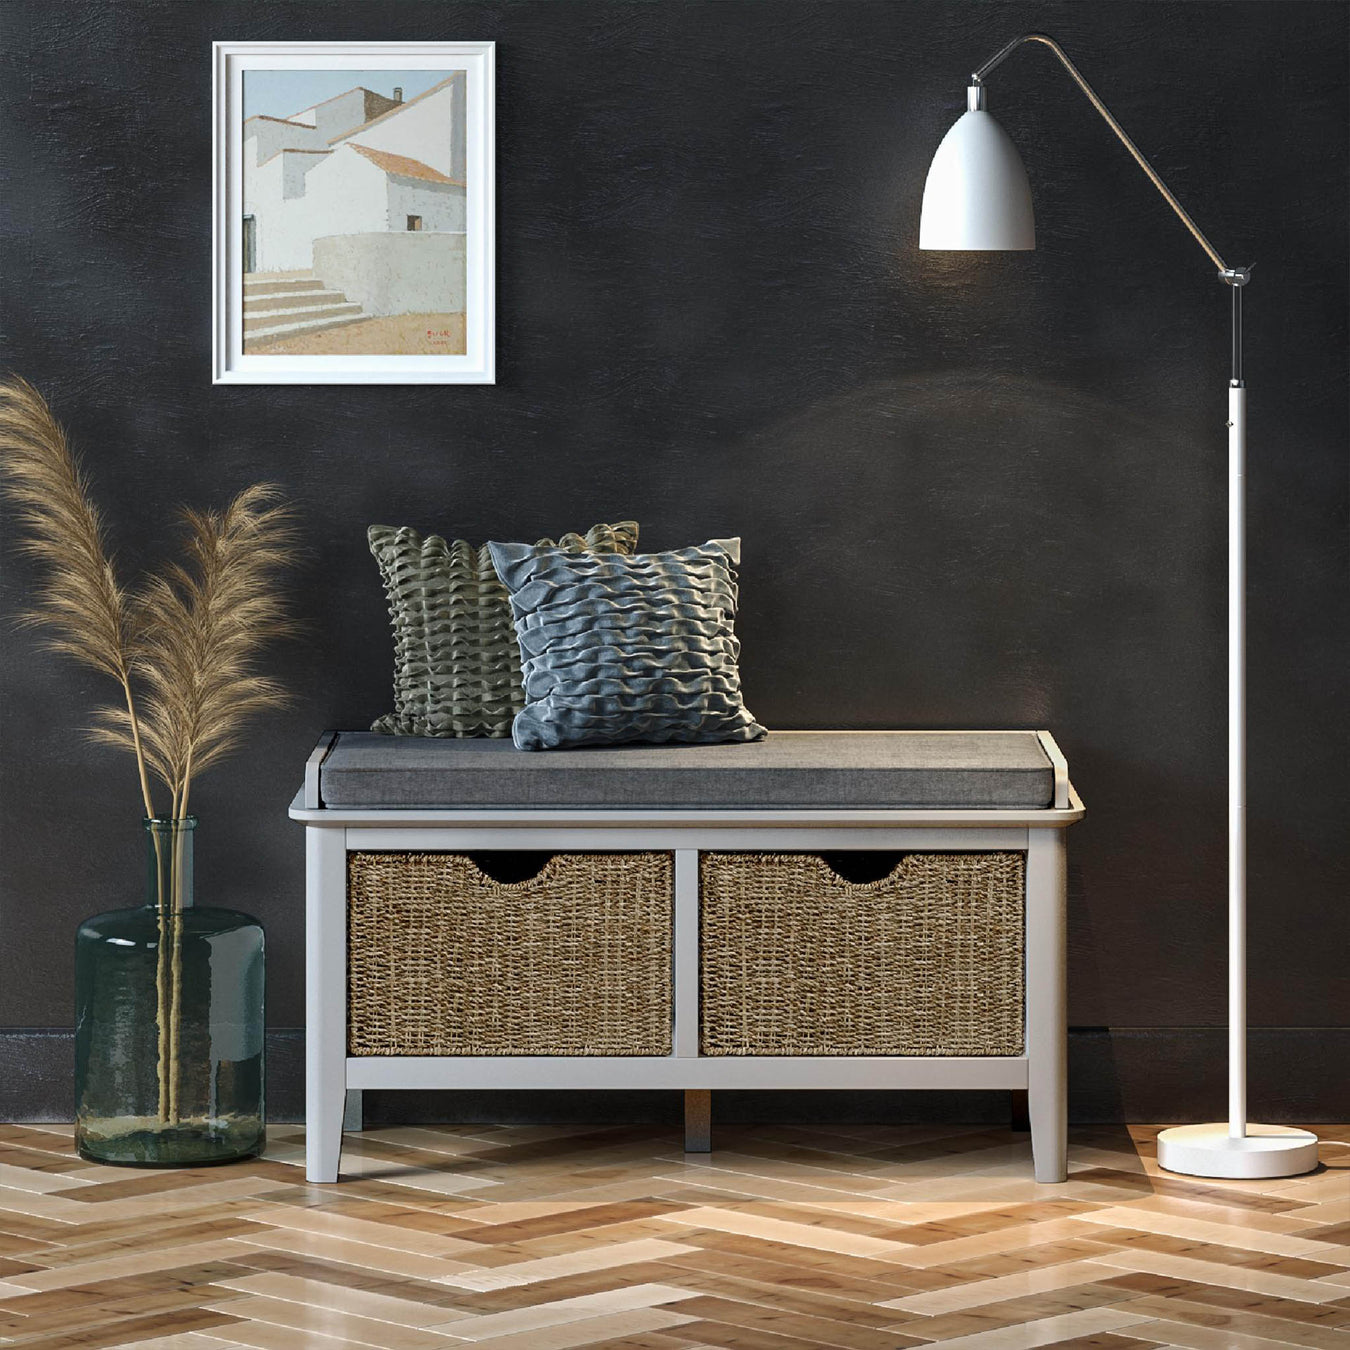 benches-roseland-furniture